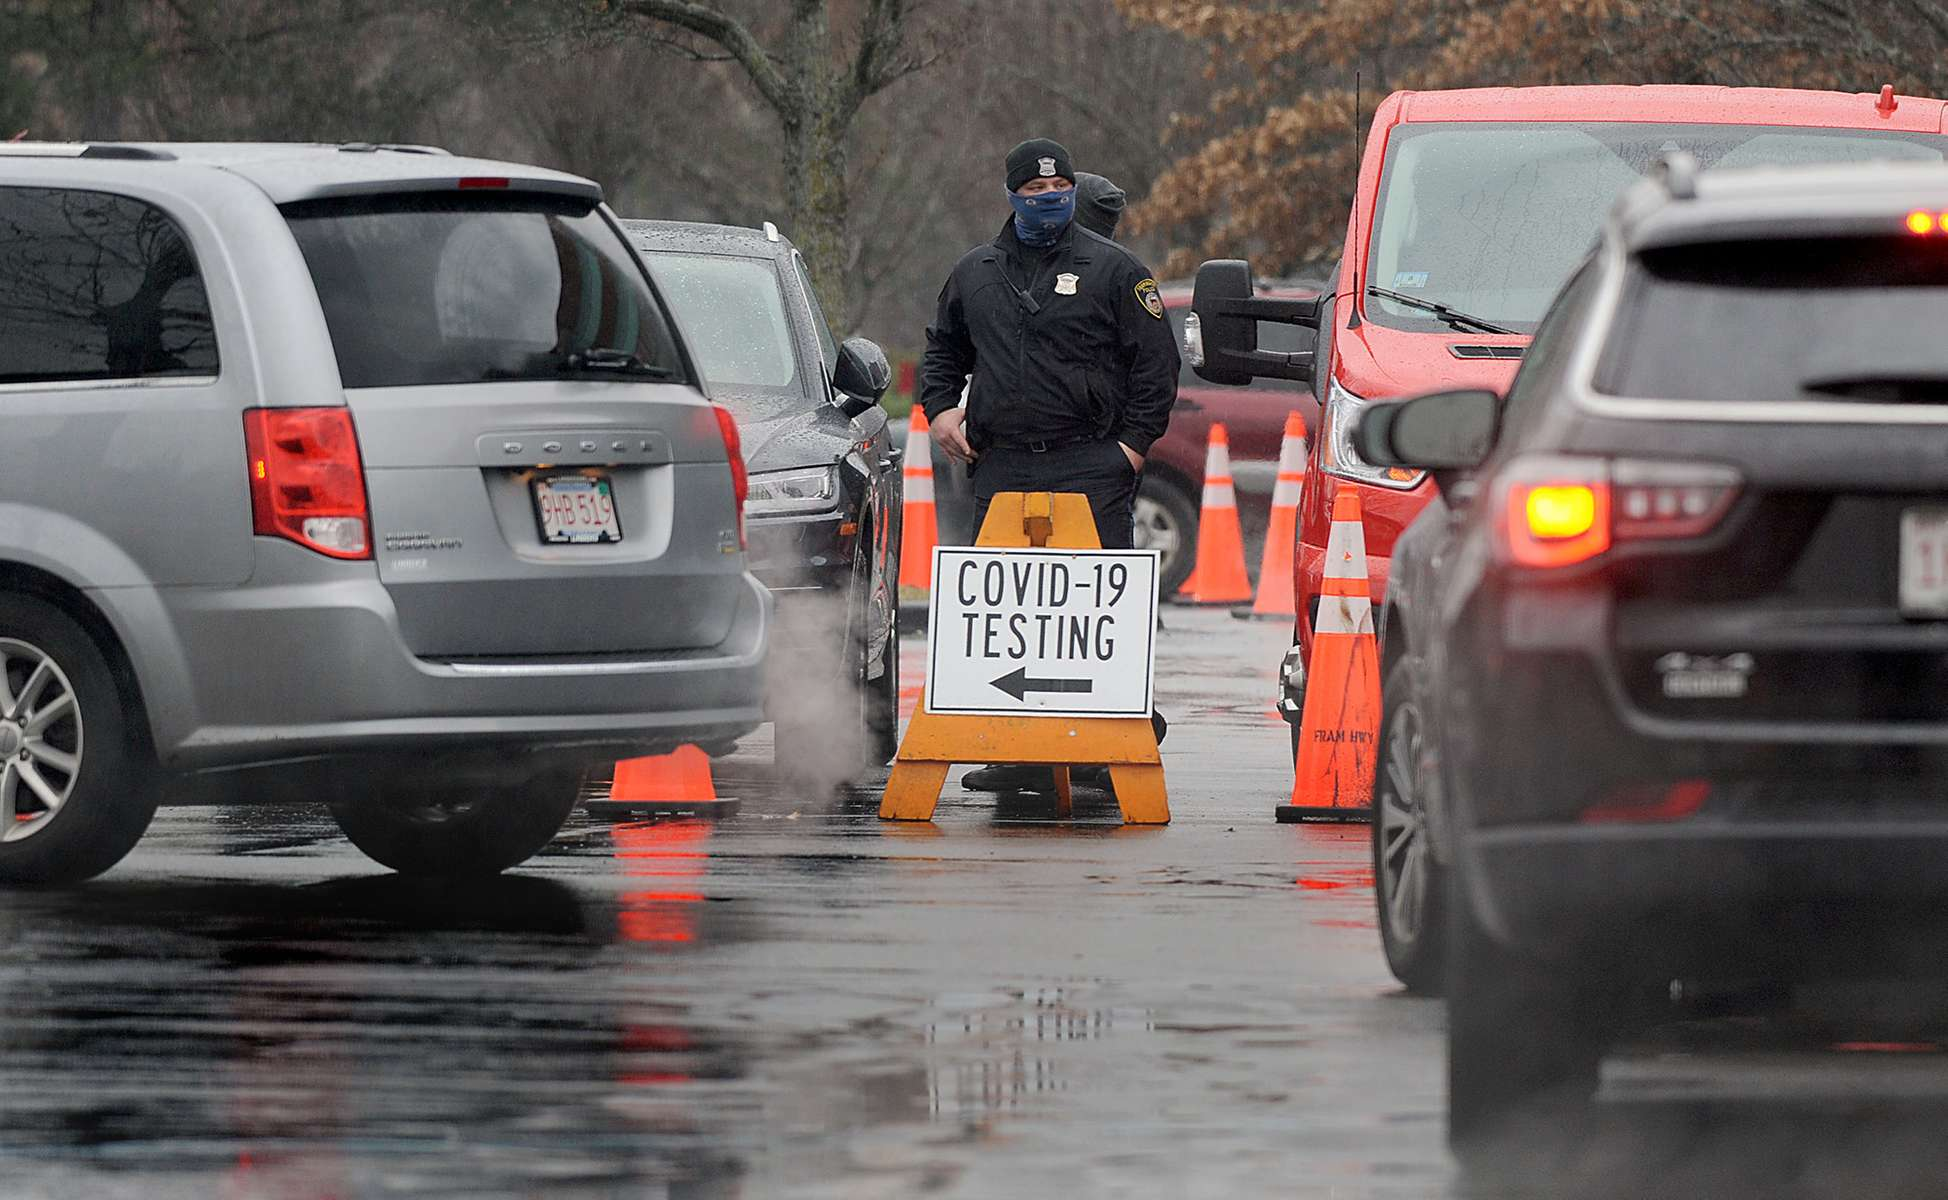 Cars snake their way through the TJX parking lot for COVID-19 testing Nov. 30, 2020 in Framingham.